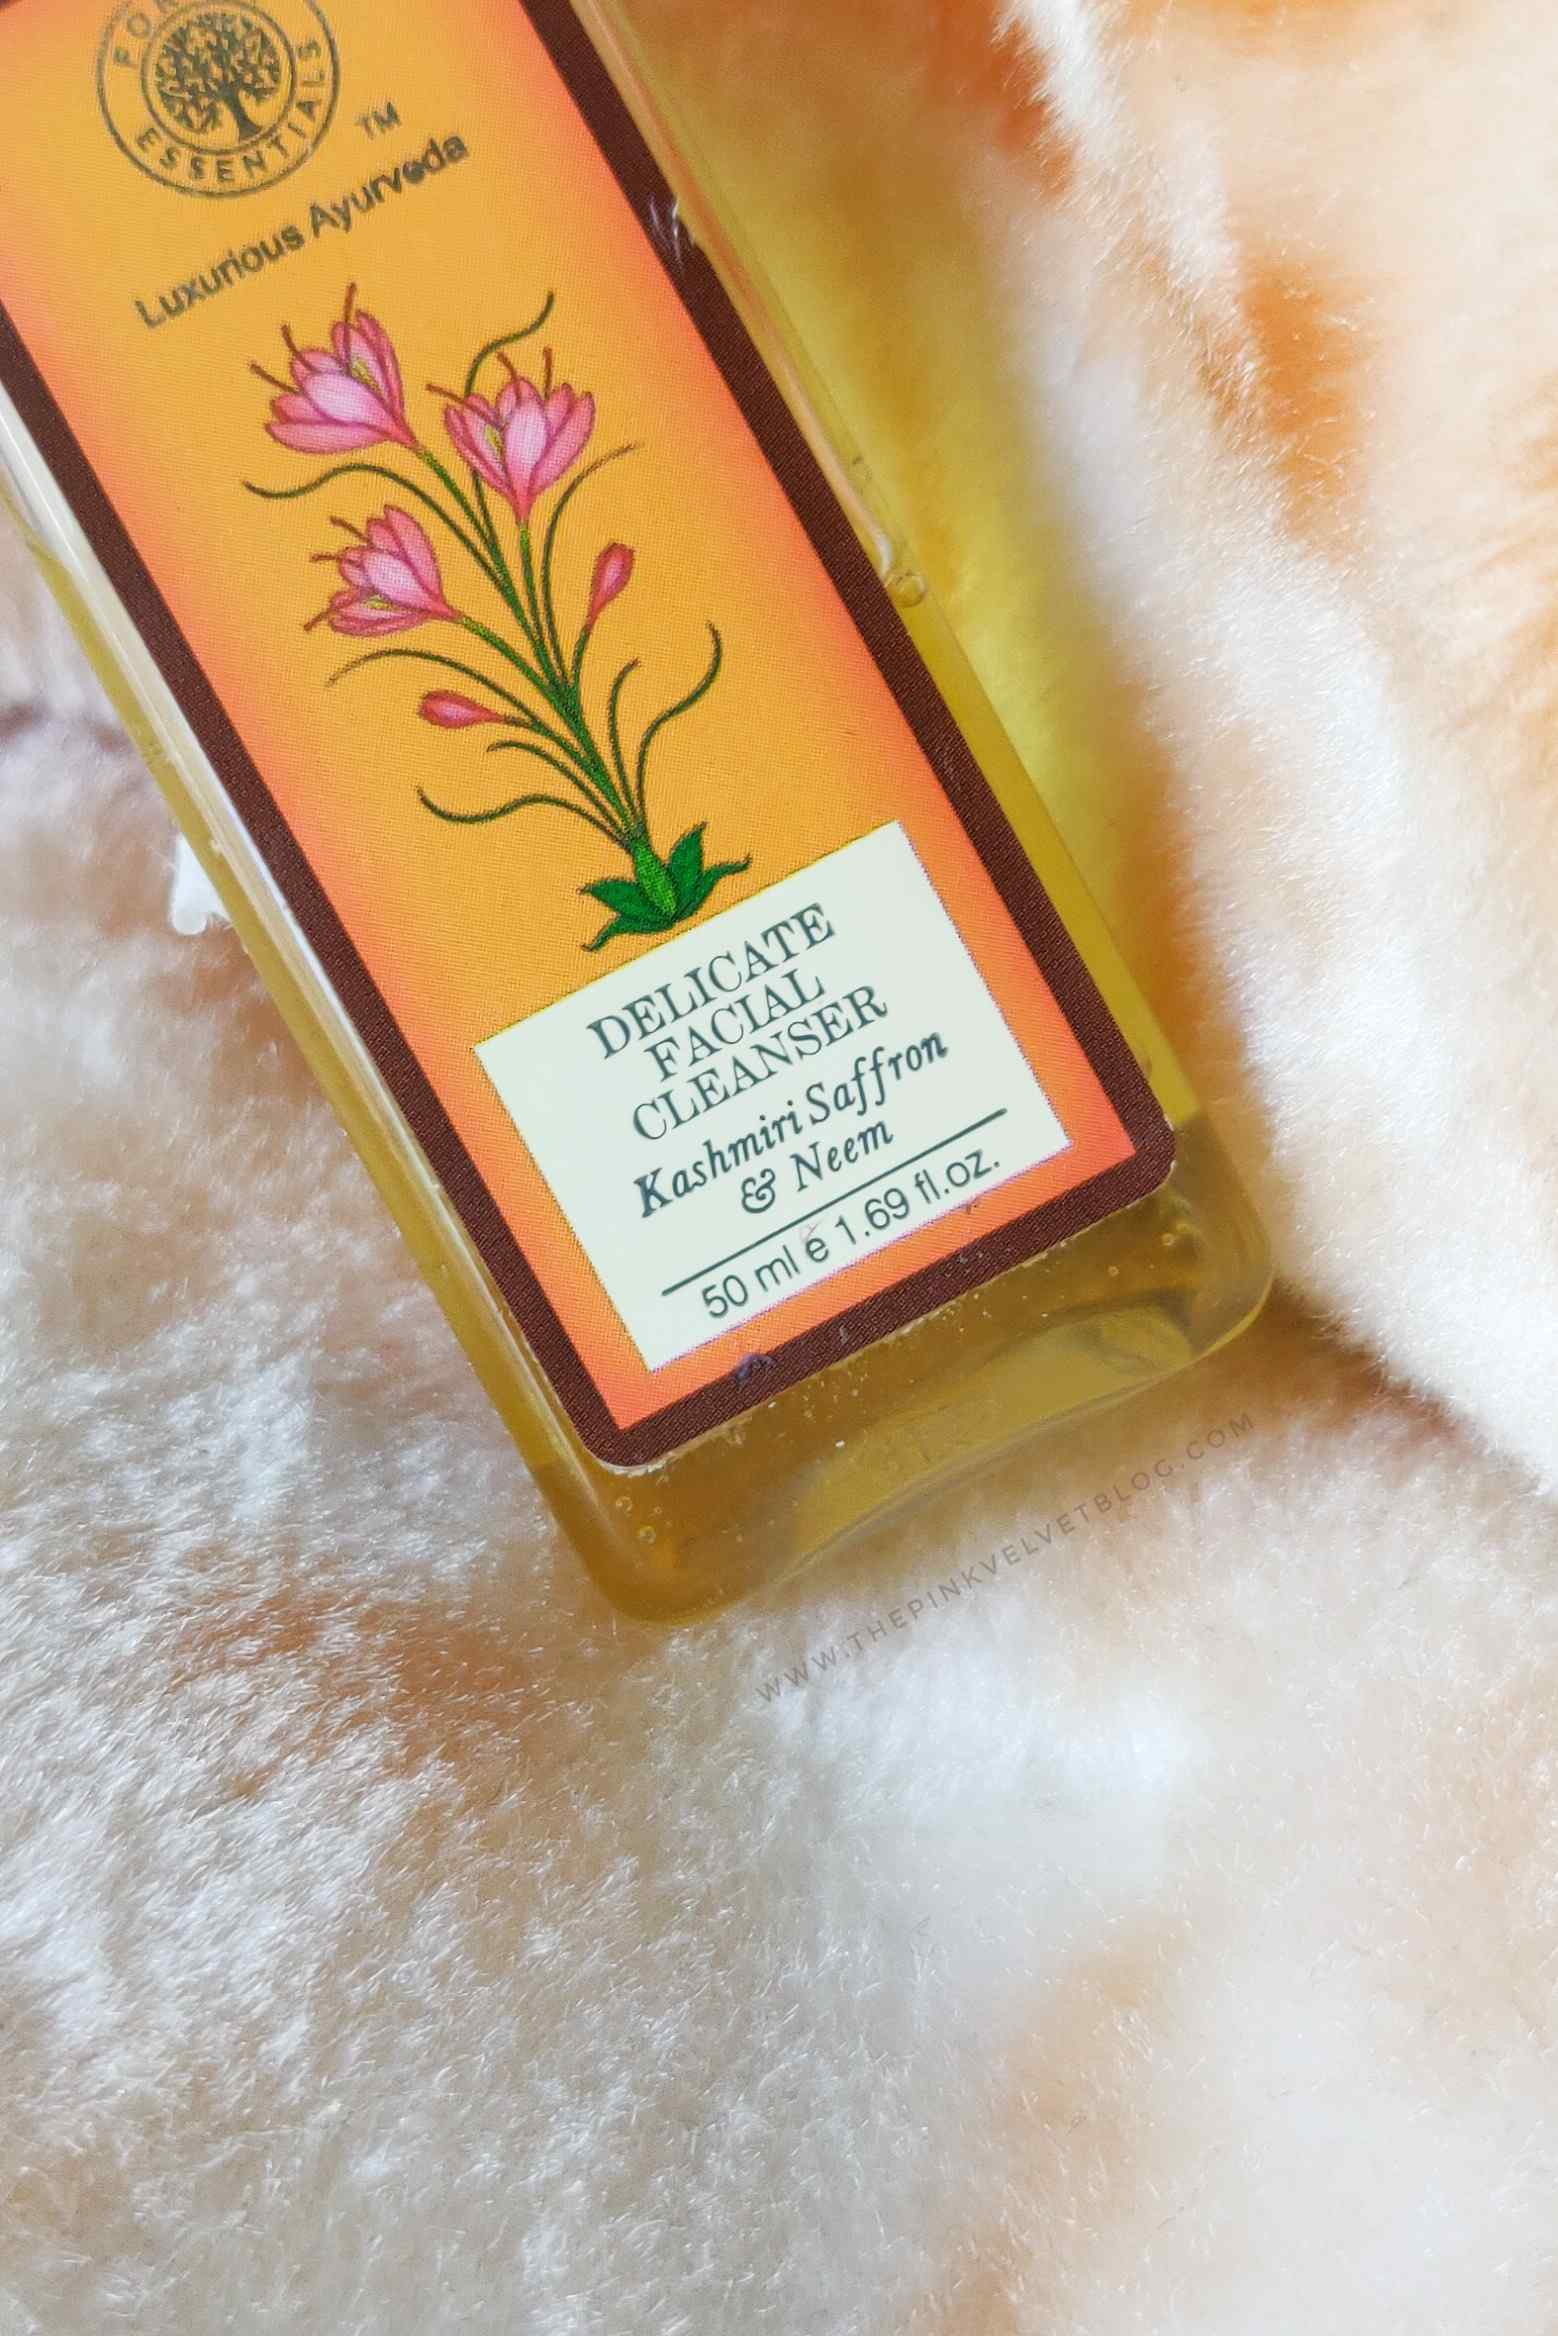 Forest Essentials Delicate Facial Cleanser Kashmiri Saffron and Neem Face Wash Review